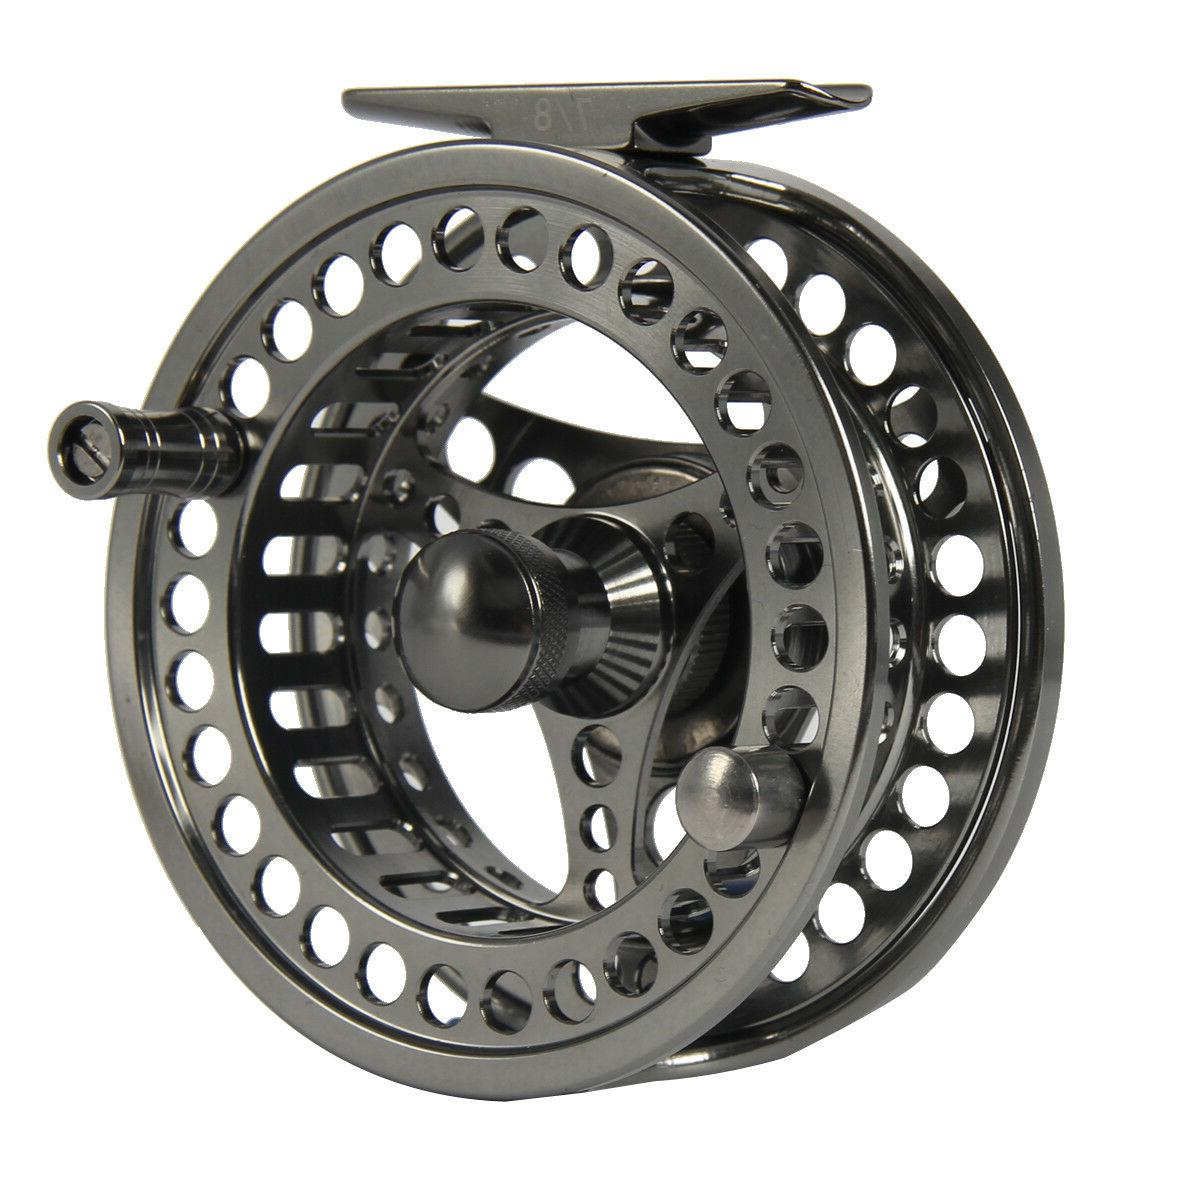 cnc machined fly reel 3 4 5